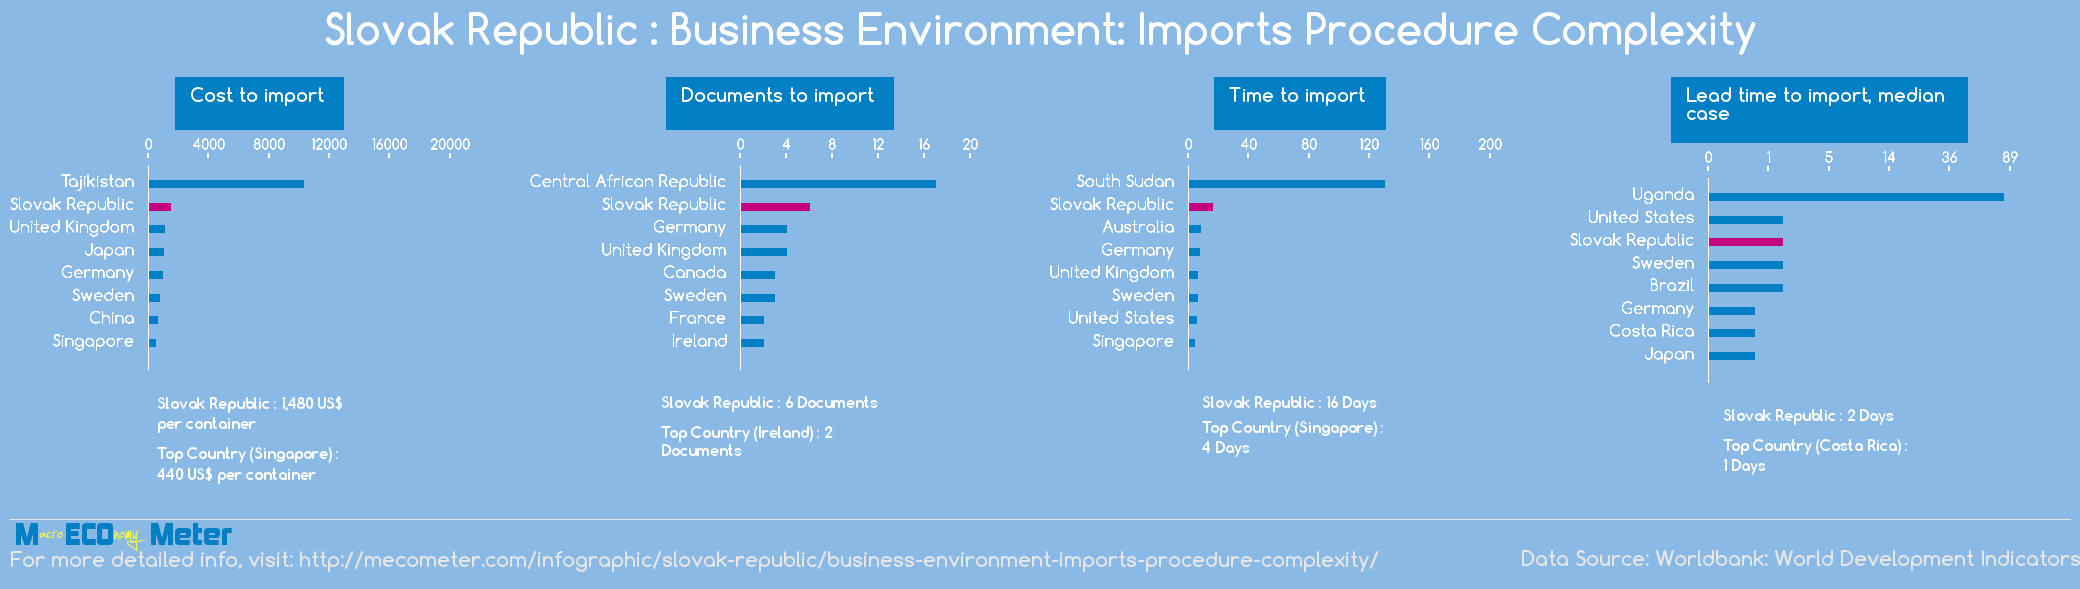 Slovak Republic : Business Environment: Imports Procedure Complexity